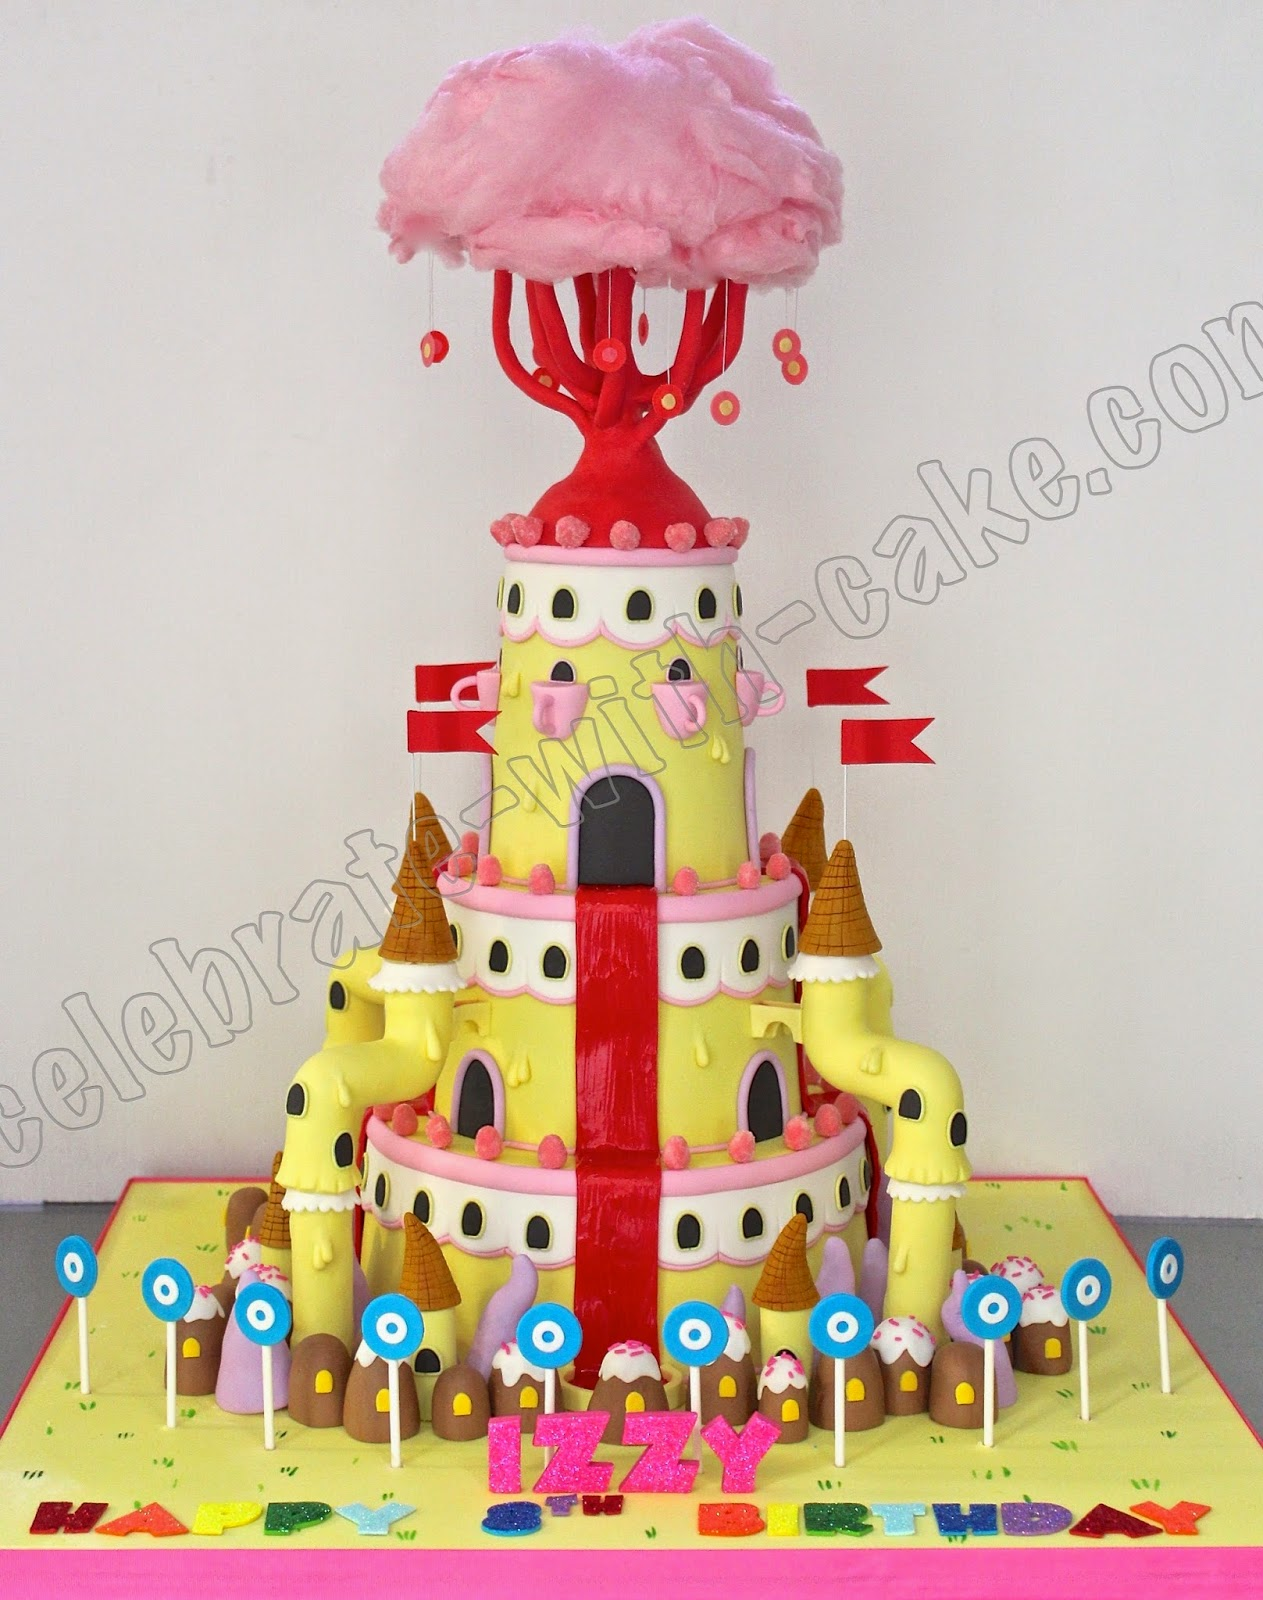 Adventure Time Bubble Gum Princess Castle 3 Tier Cake